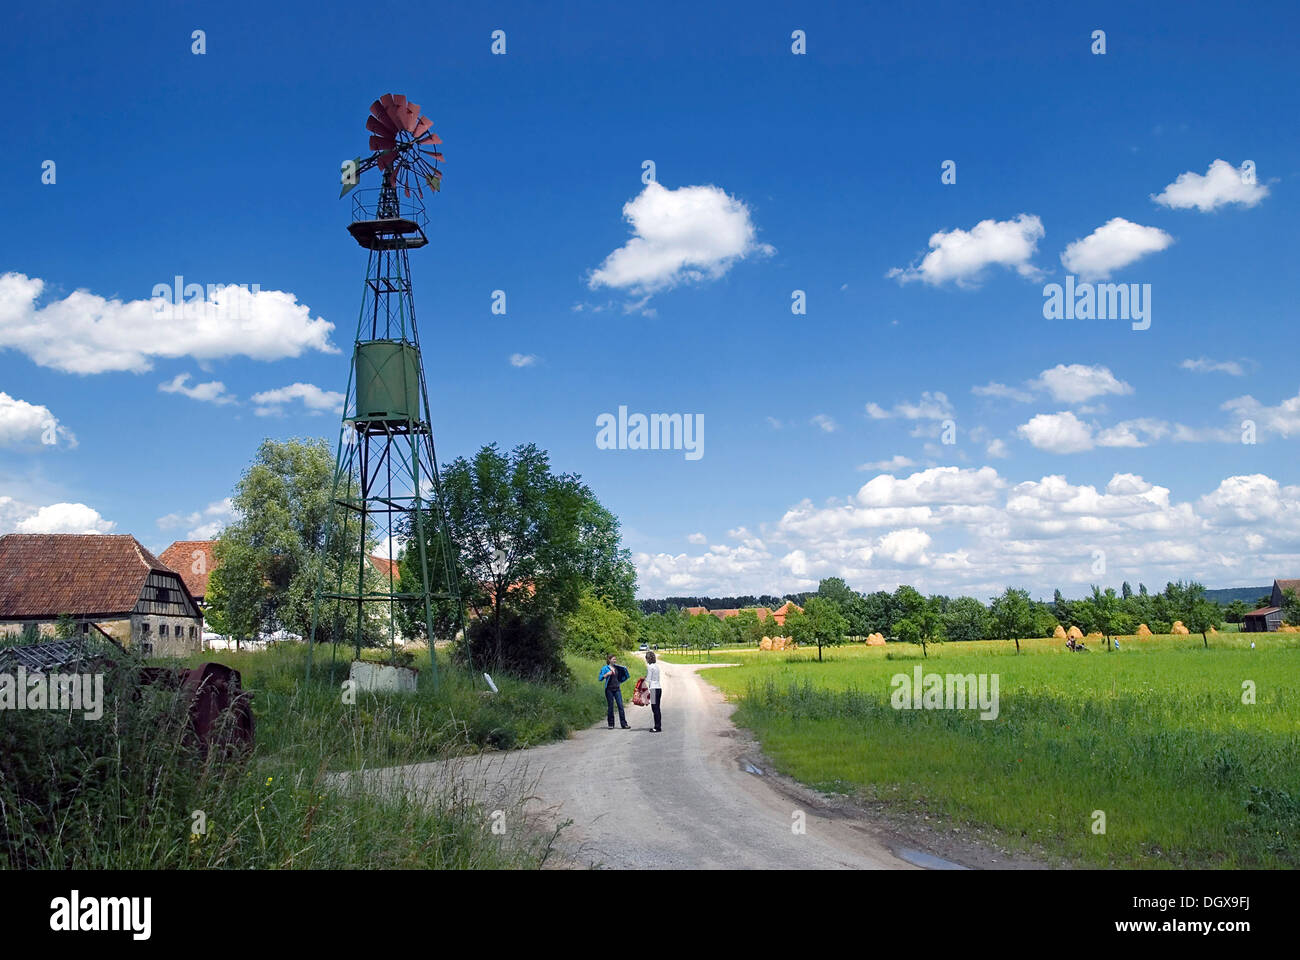 Old windmill for pumping water from Mainfranken, clouds in the sky, Franconian Open-air Museum of Bad Windsheim, Bavaria - Stock Image